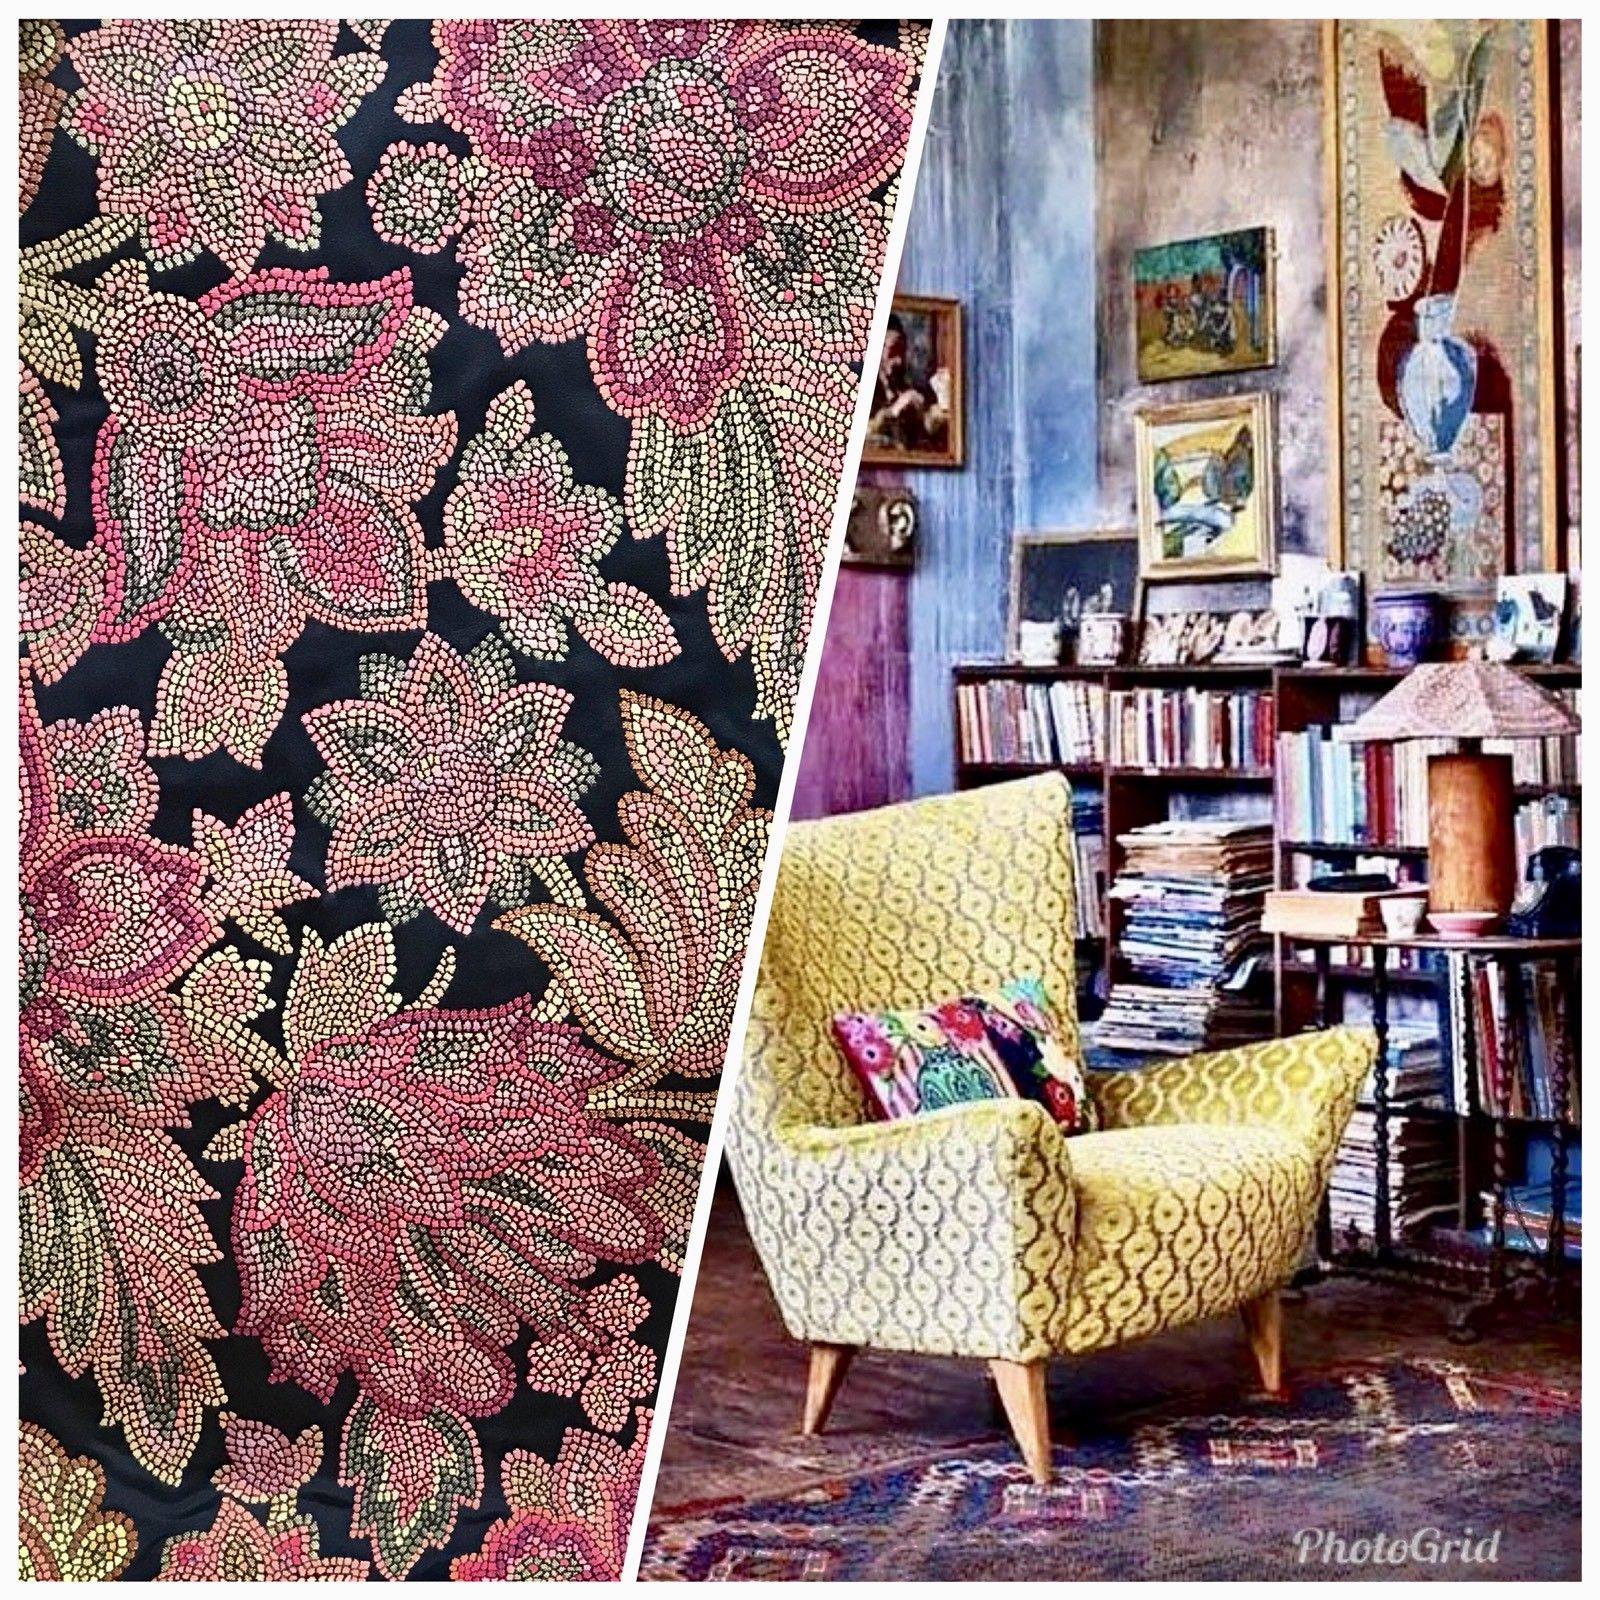 SWATCH Designer Brocade Jacquard Fabric- Black Floral - Damask- Upholstery - Fancy Styles Fabric Boutique